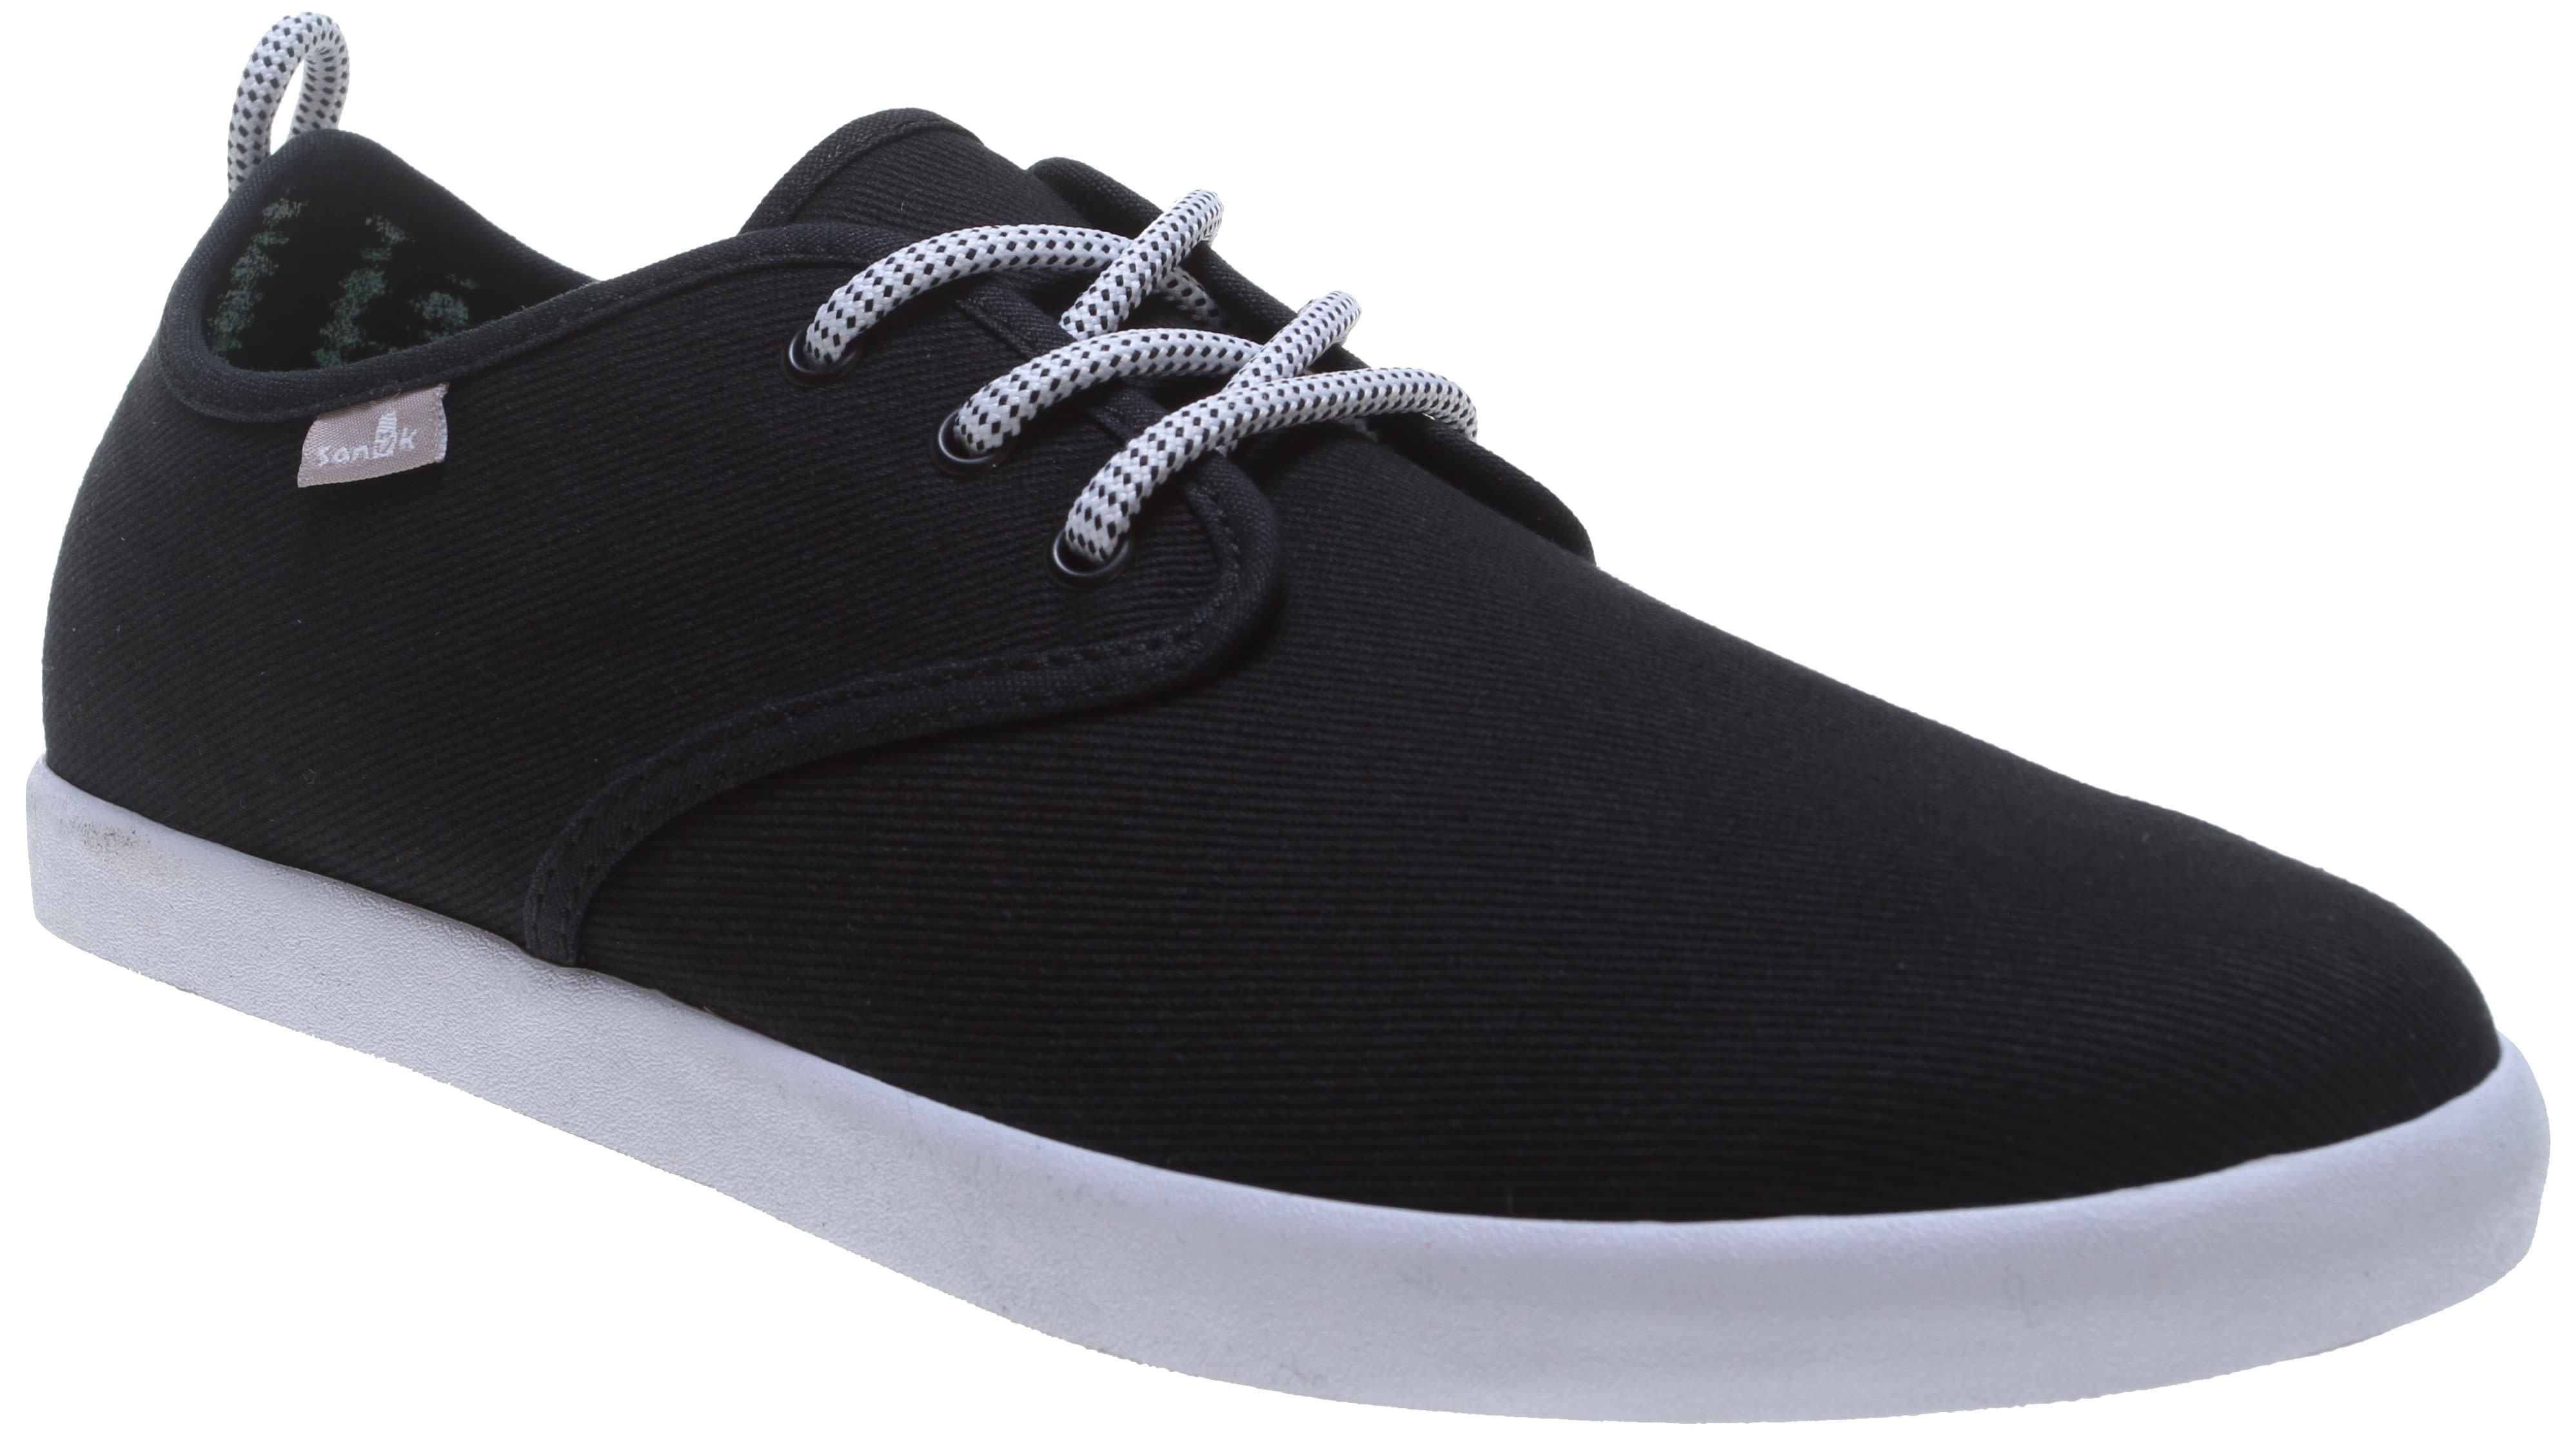 On Sale Sanuk Guide Shoes up to 45% off